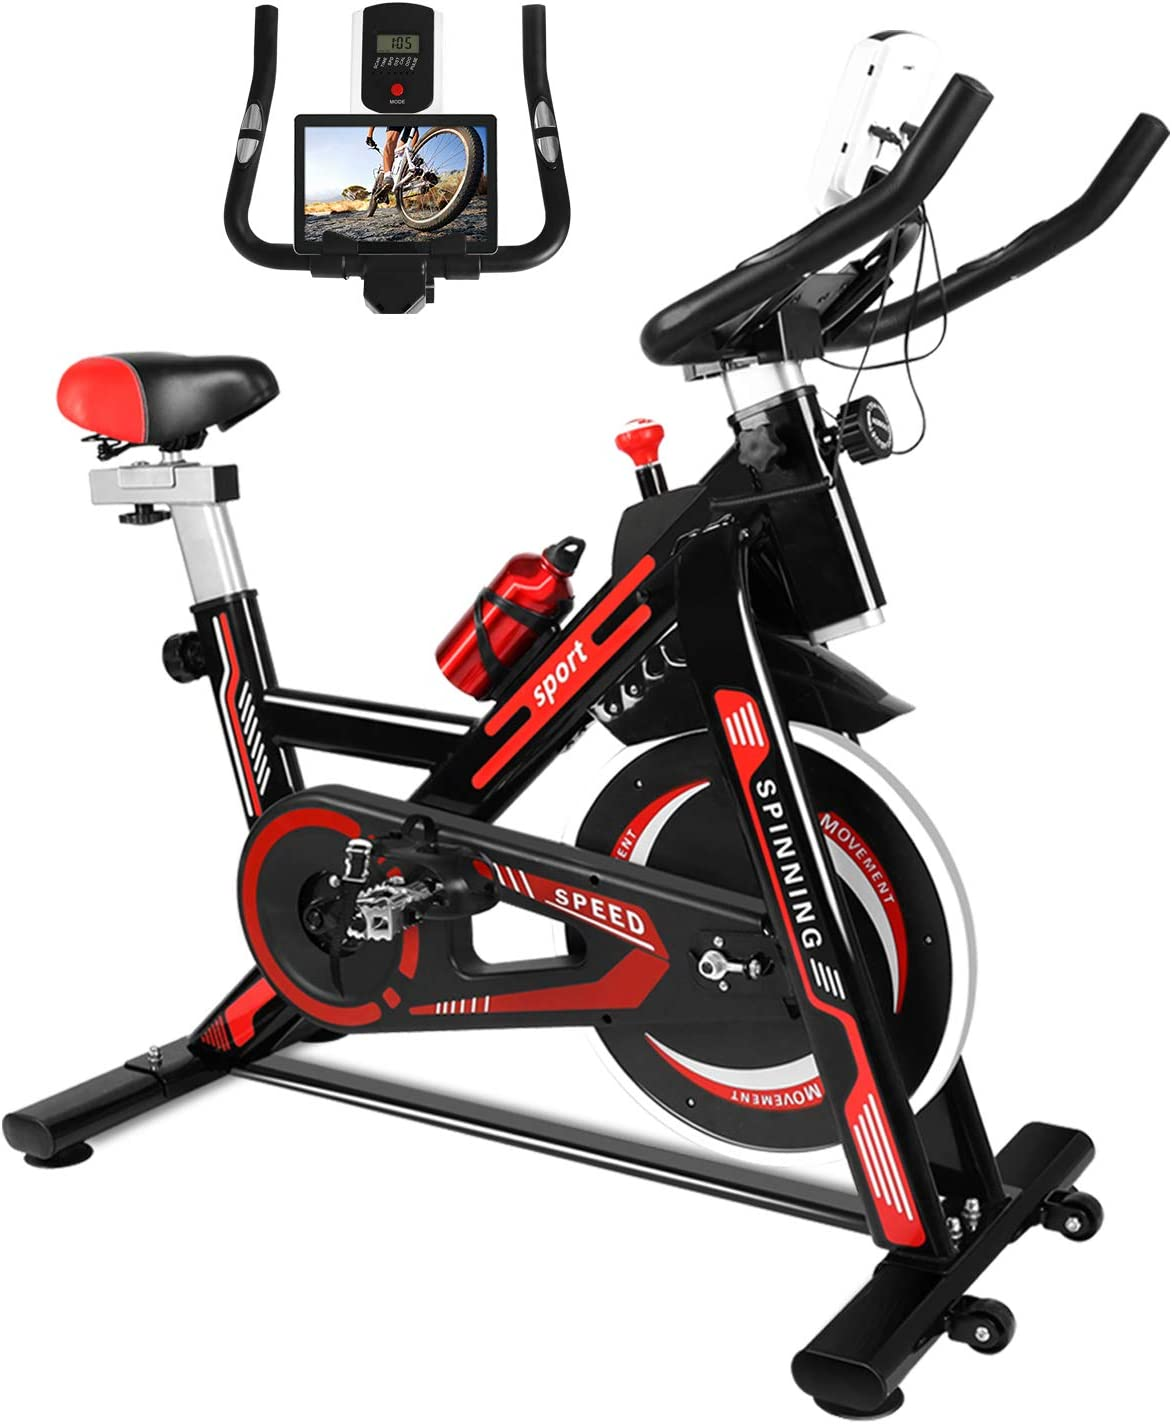 naspaluro Exercise Bikes, Fitness Exercise Equipment Indoor Cycling Bike, Stationary Infinite Resistance Spin Bike with Phone Holder/Heart Moniter/LCD Monitor/Smooth Belt Drive/Soft Seat